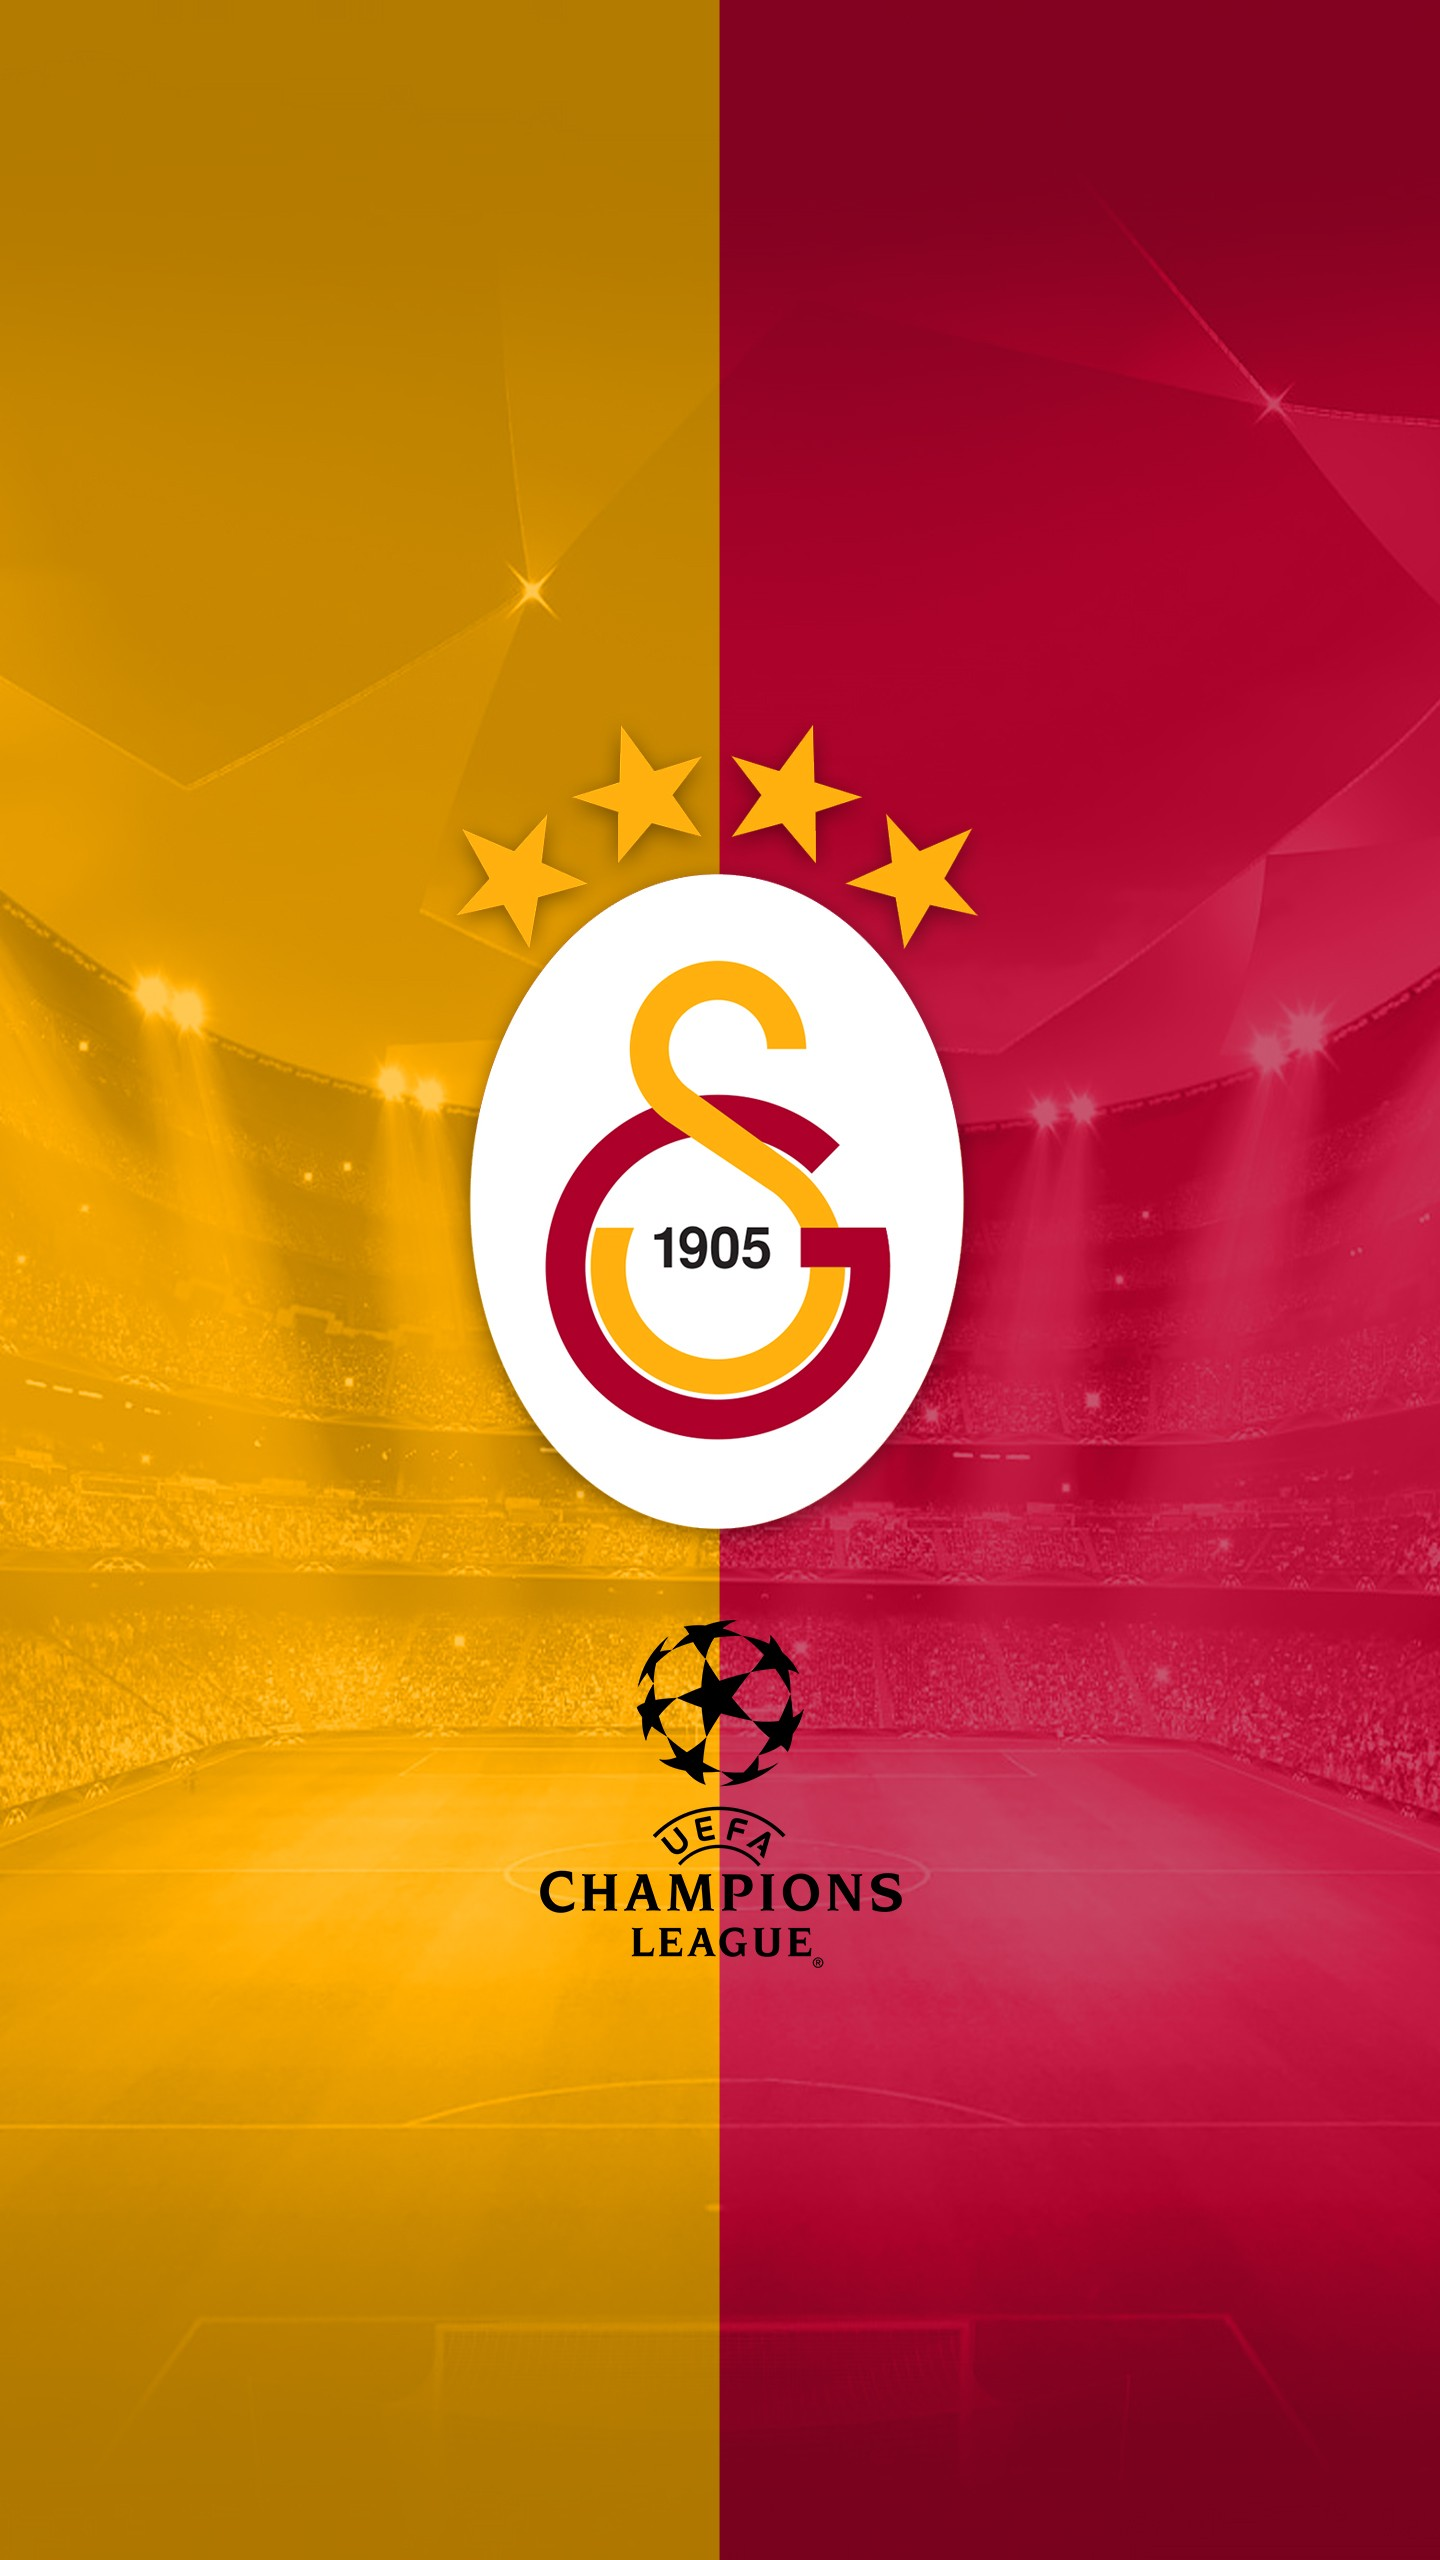 Soccer Iphone Wallpaper Hd Galatasaray S K Soccer Wallpapers Hd Desktop And